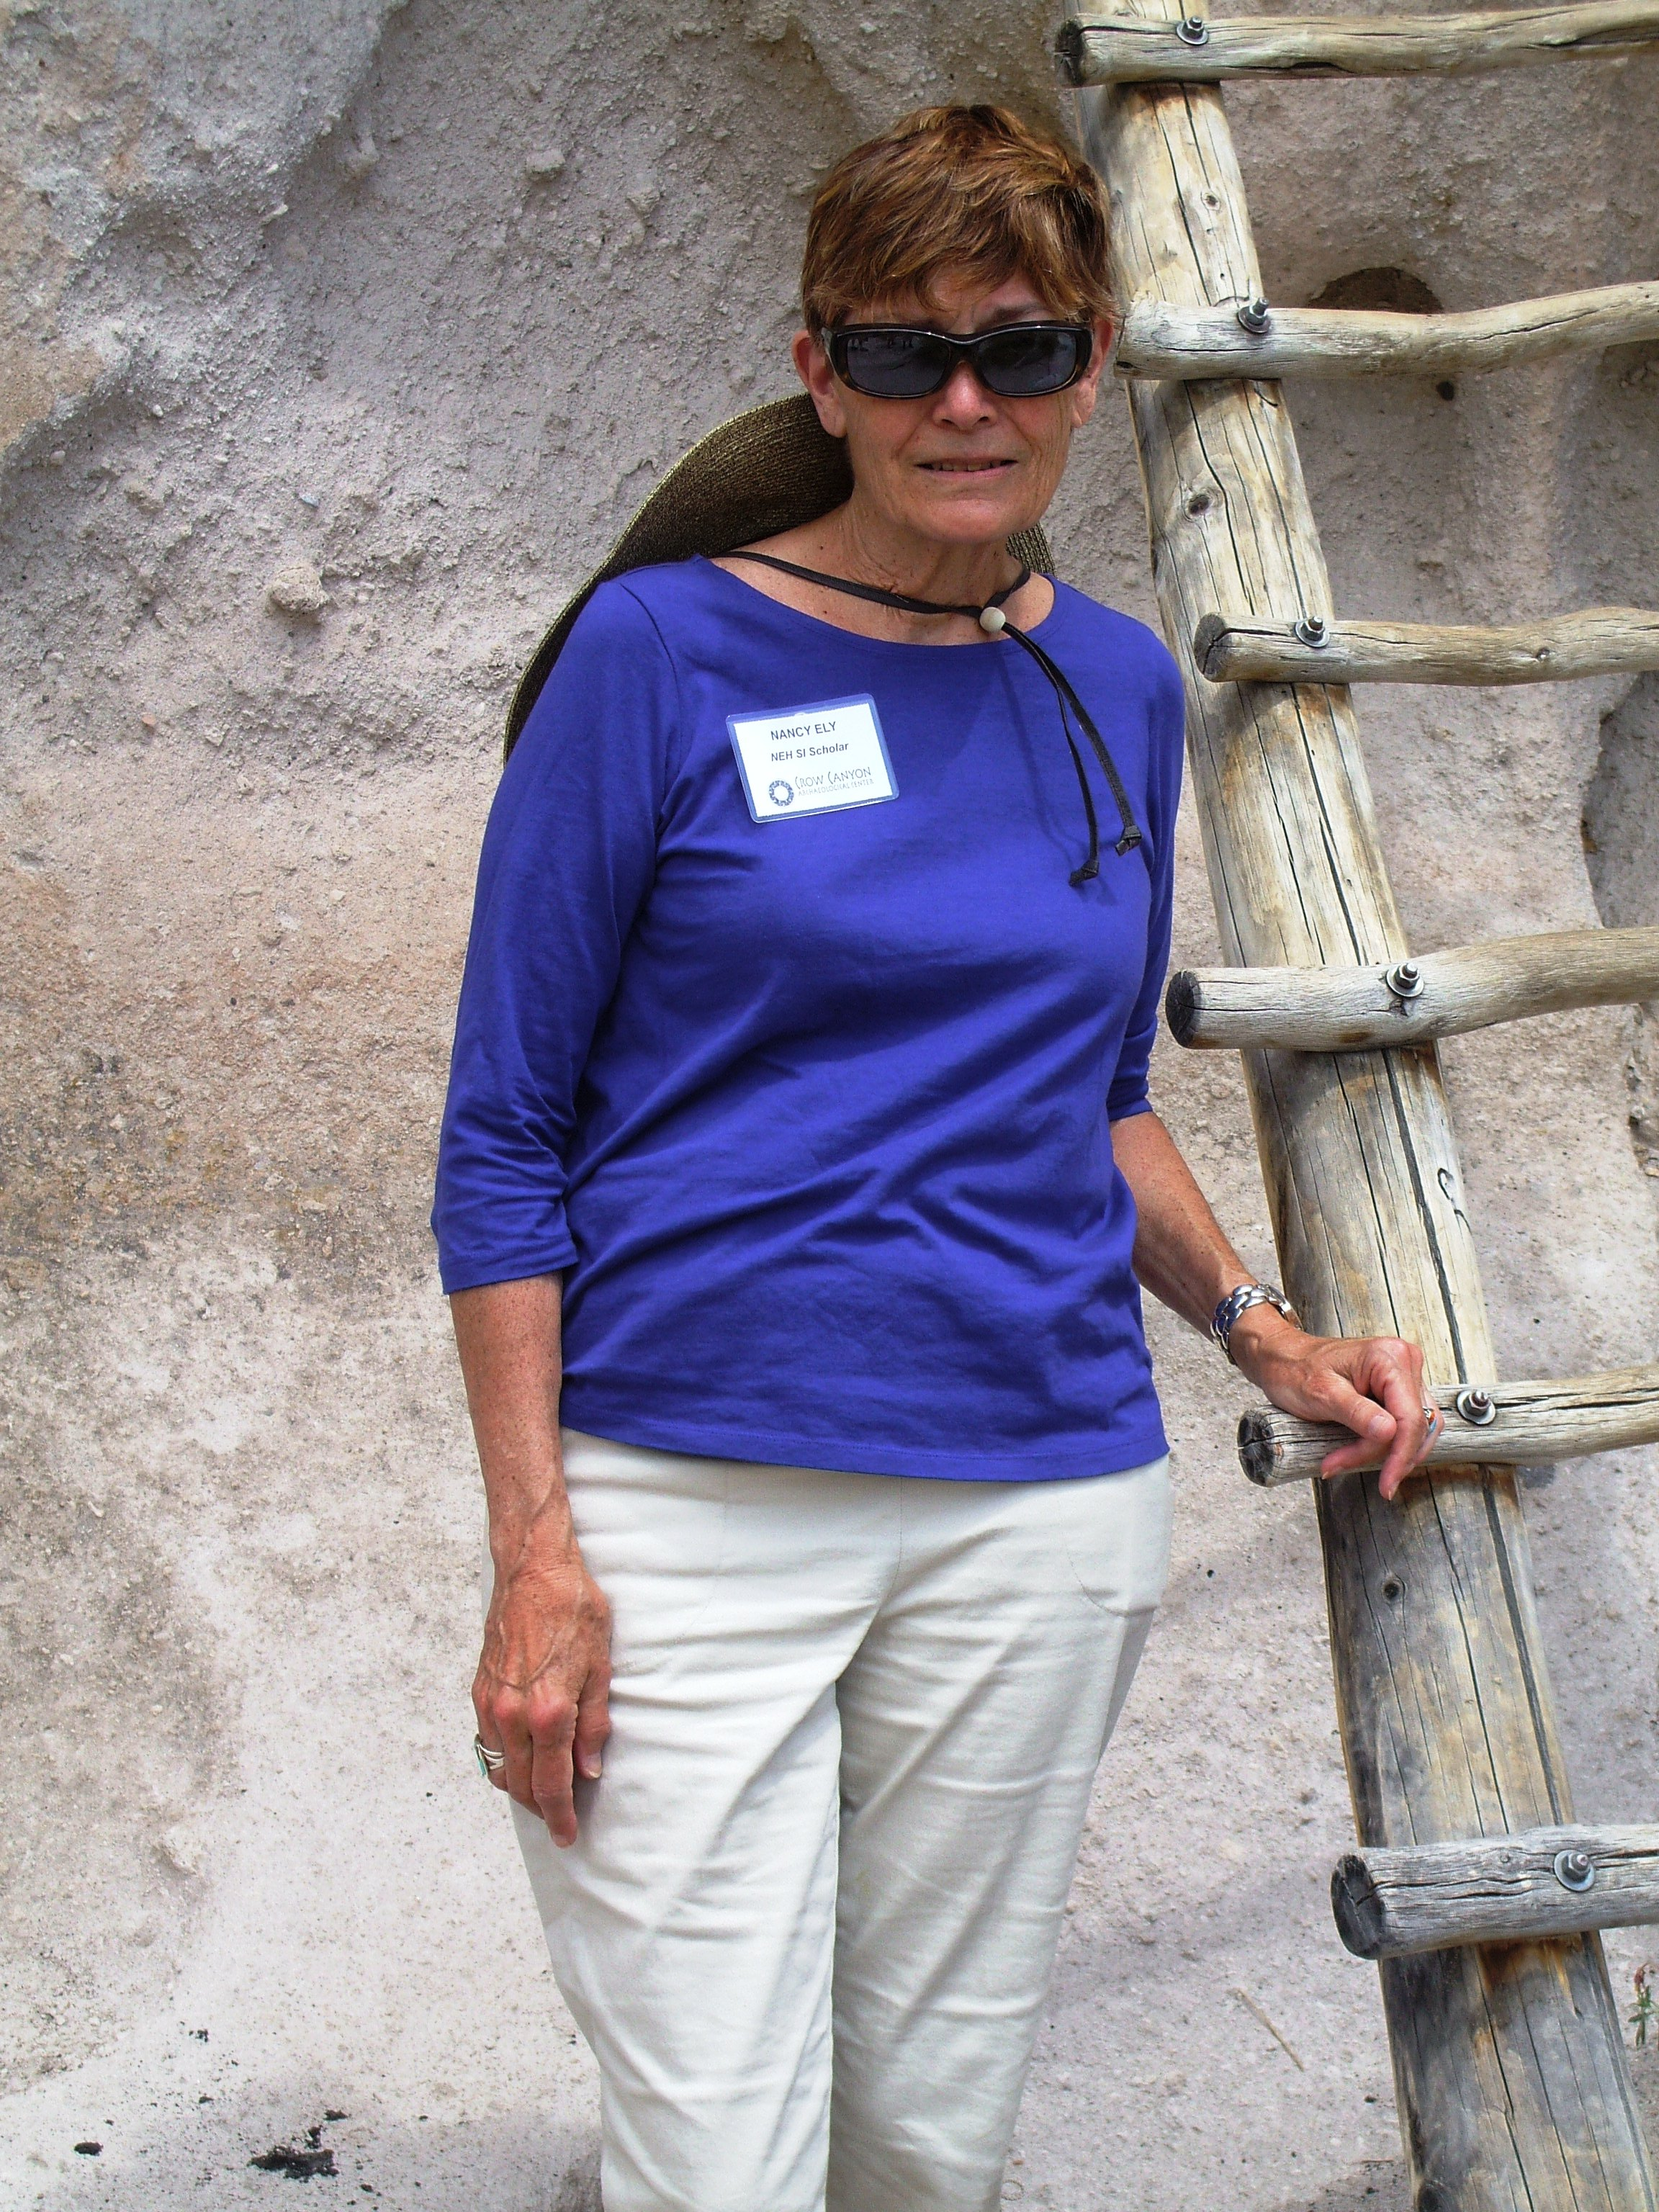 Ms. Ely at Bandelier Canyon archaeological site